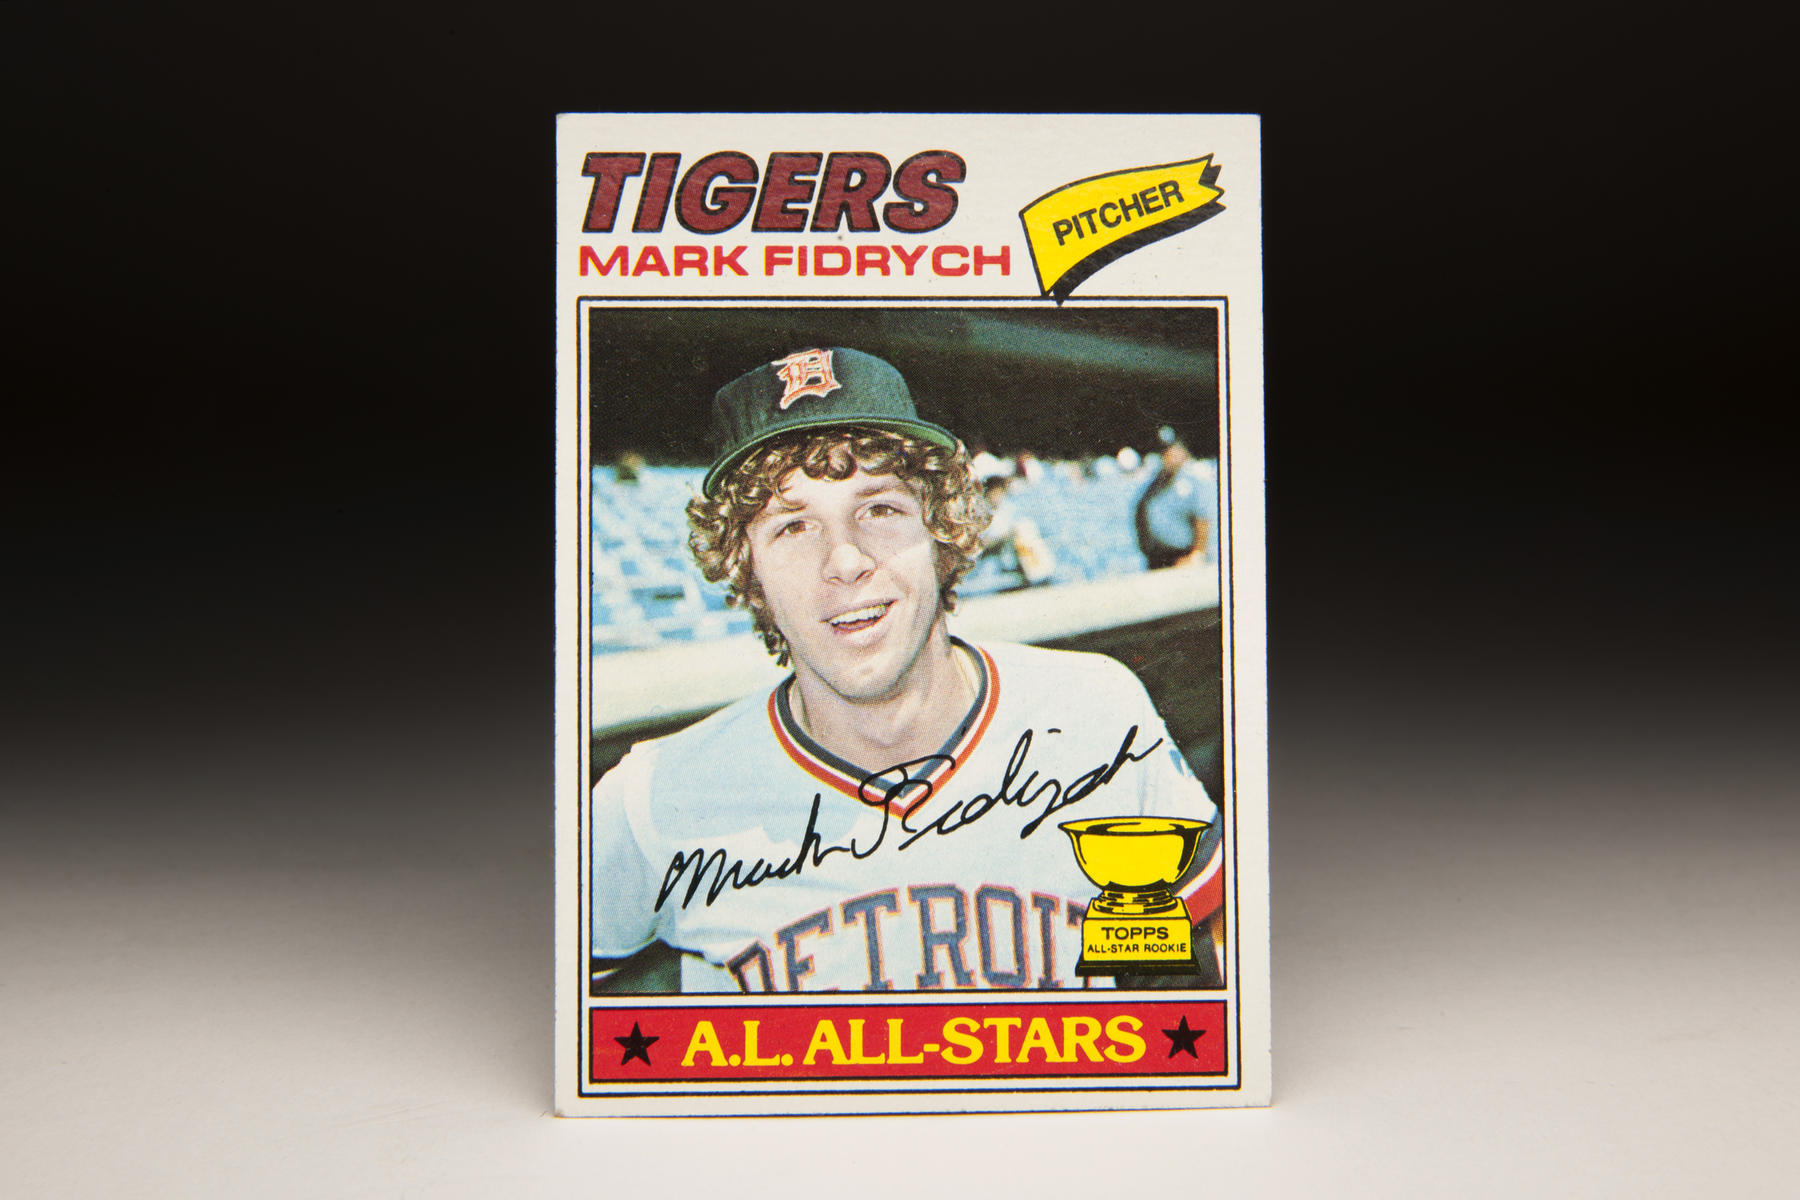 Mark Fidrych's card was perhaps the most anticipated in the 1977 set. (Milo Stewart, Jr. / National Baseball Hall of Fame)